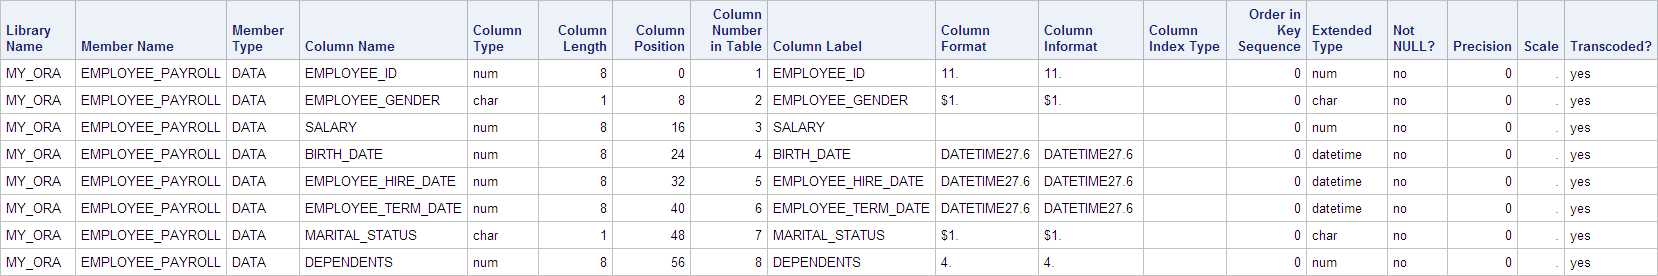 PROC SQL Dictionary.Columns query output